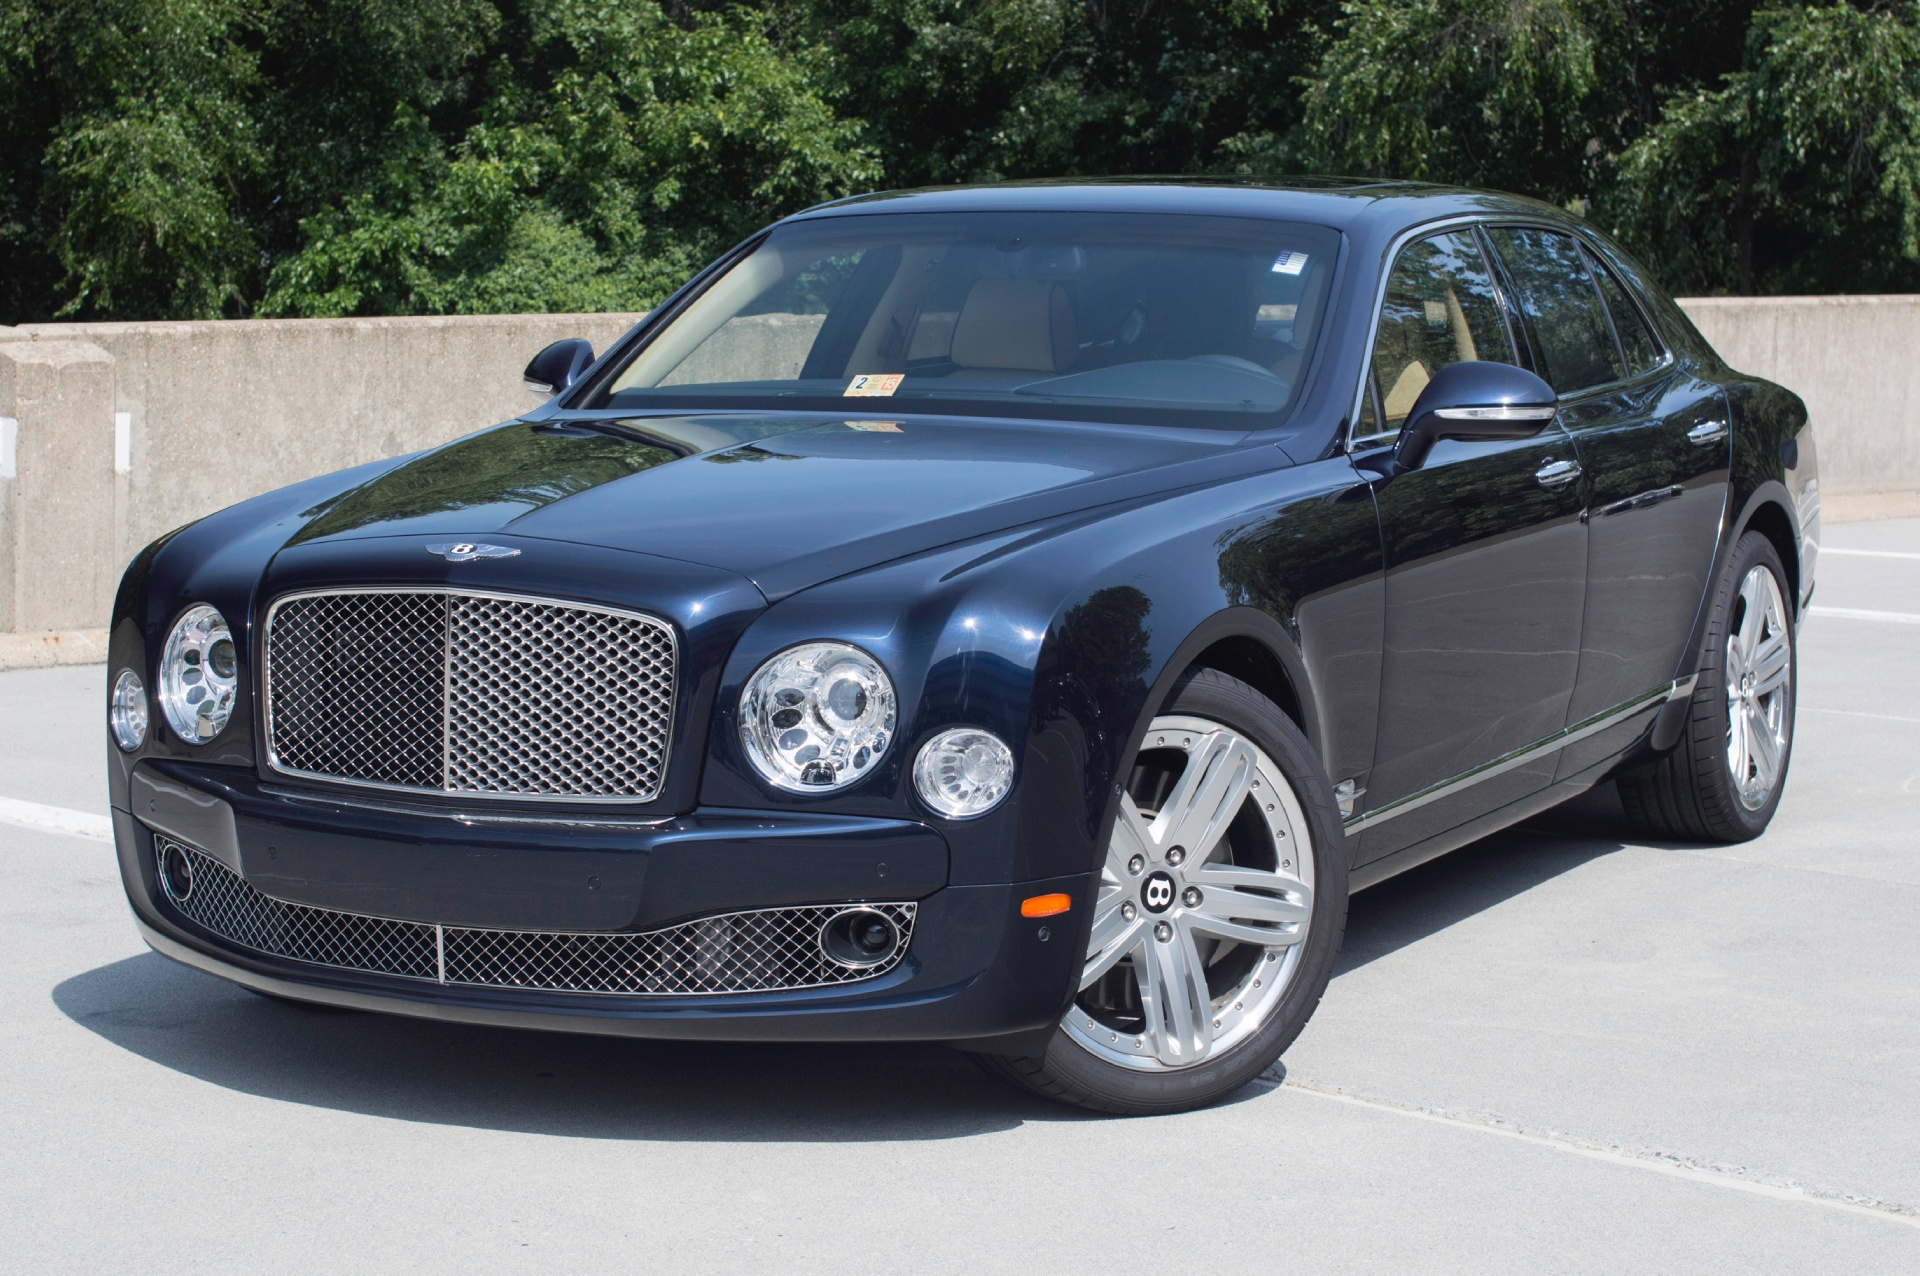 2014 bentley mulsanne stock 4n018942 for sale near vienna va va. Cars Review. Best American Auto & Cars Review